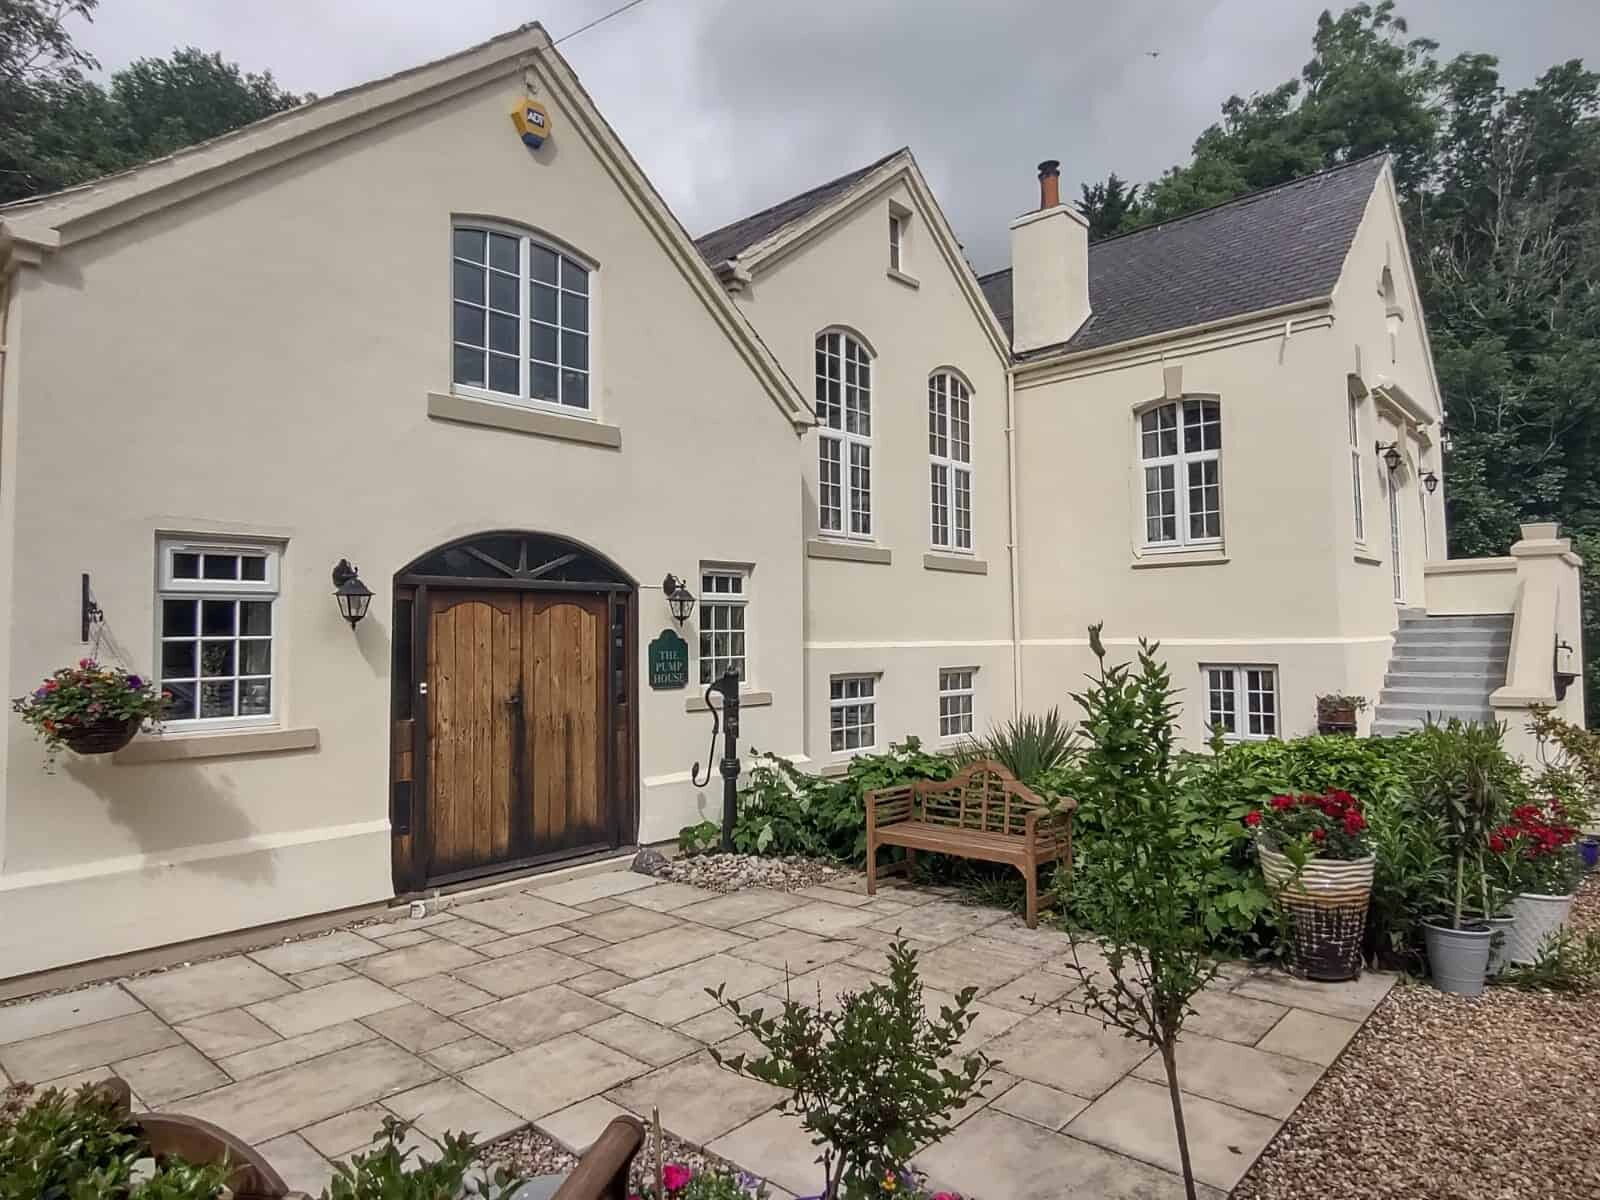 Northamptonshire house with never paint again exterior wall coatings